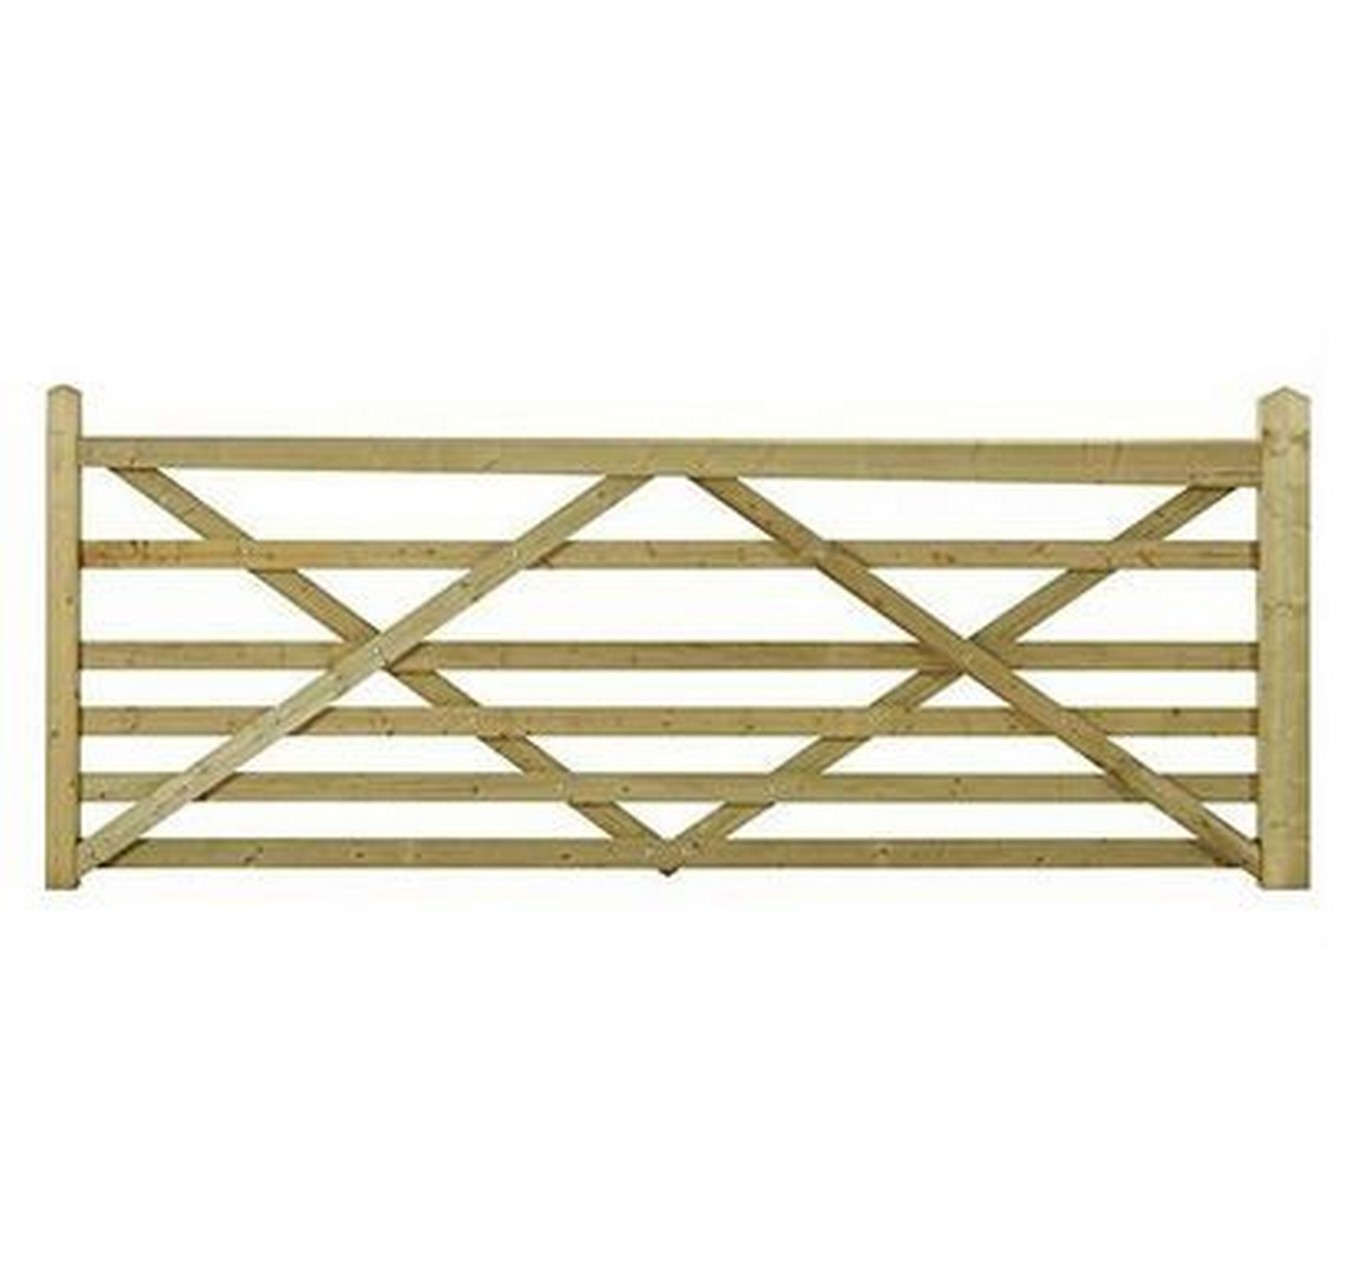 Wooden Somerfield Gate 12ft